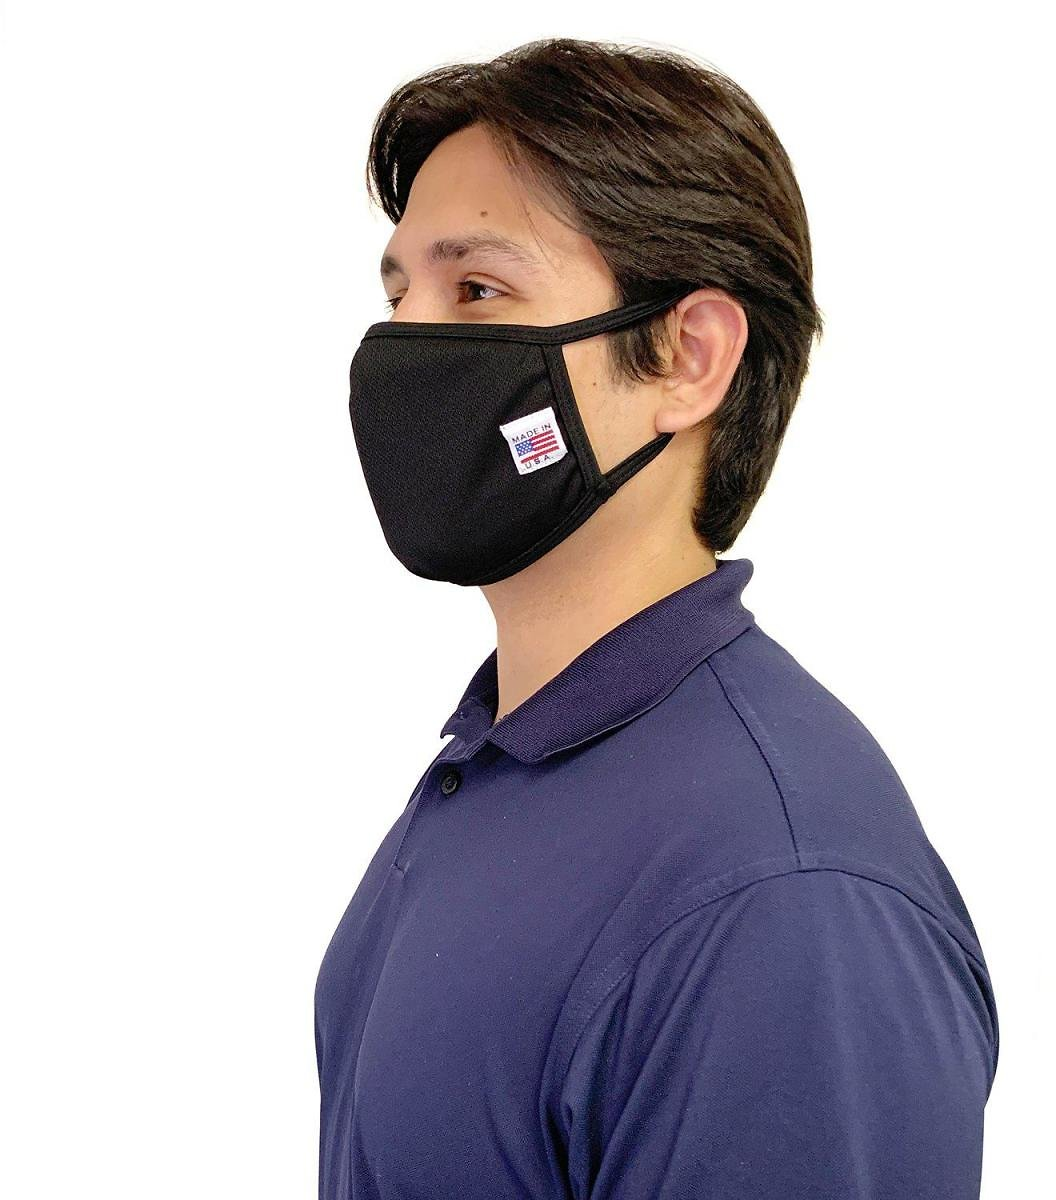 Casaba - Made in USA Face Masks Mouth Nose Washable Reusable Double Layer Cotton Cloth Blend